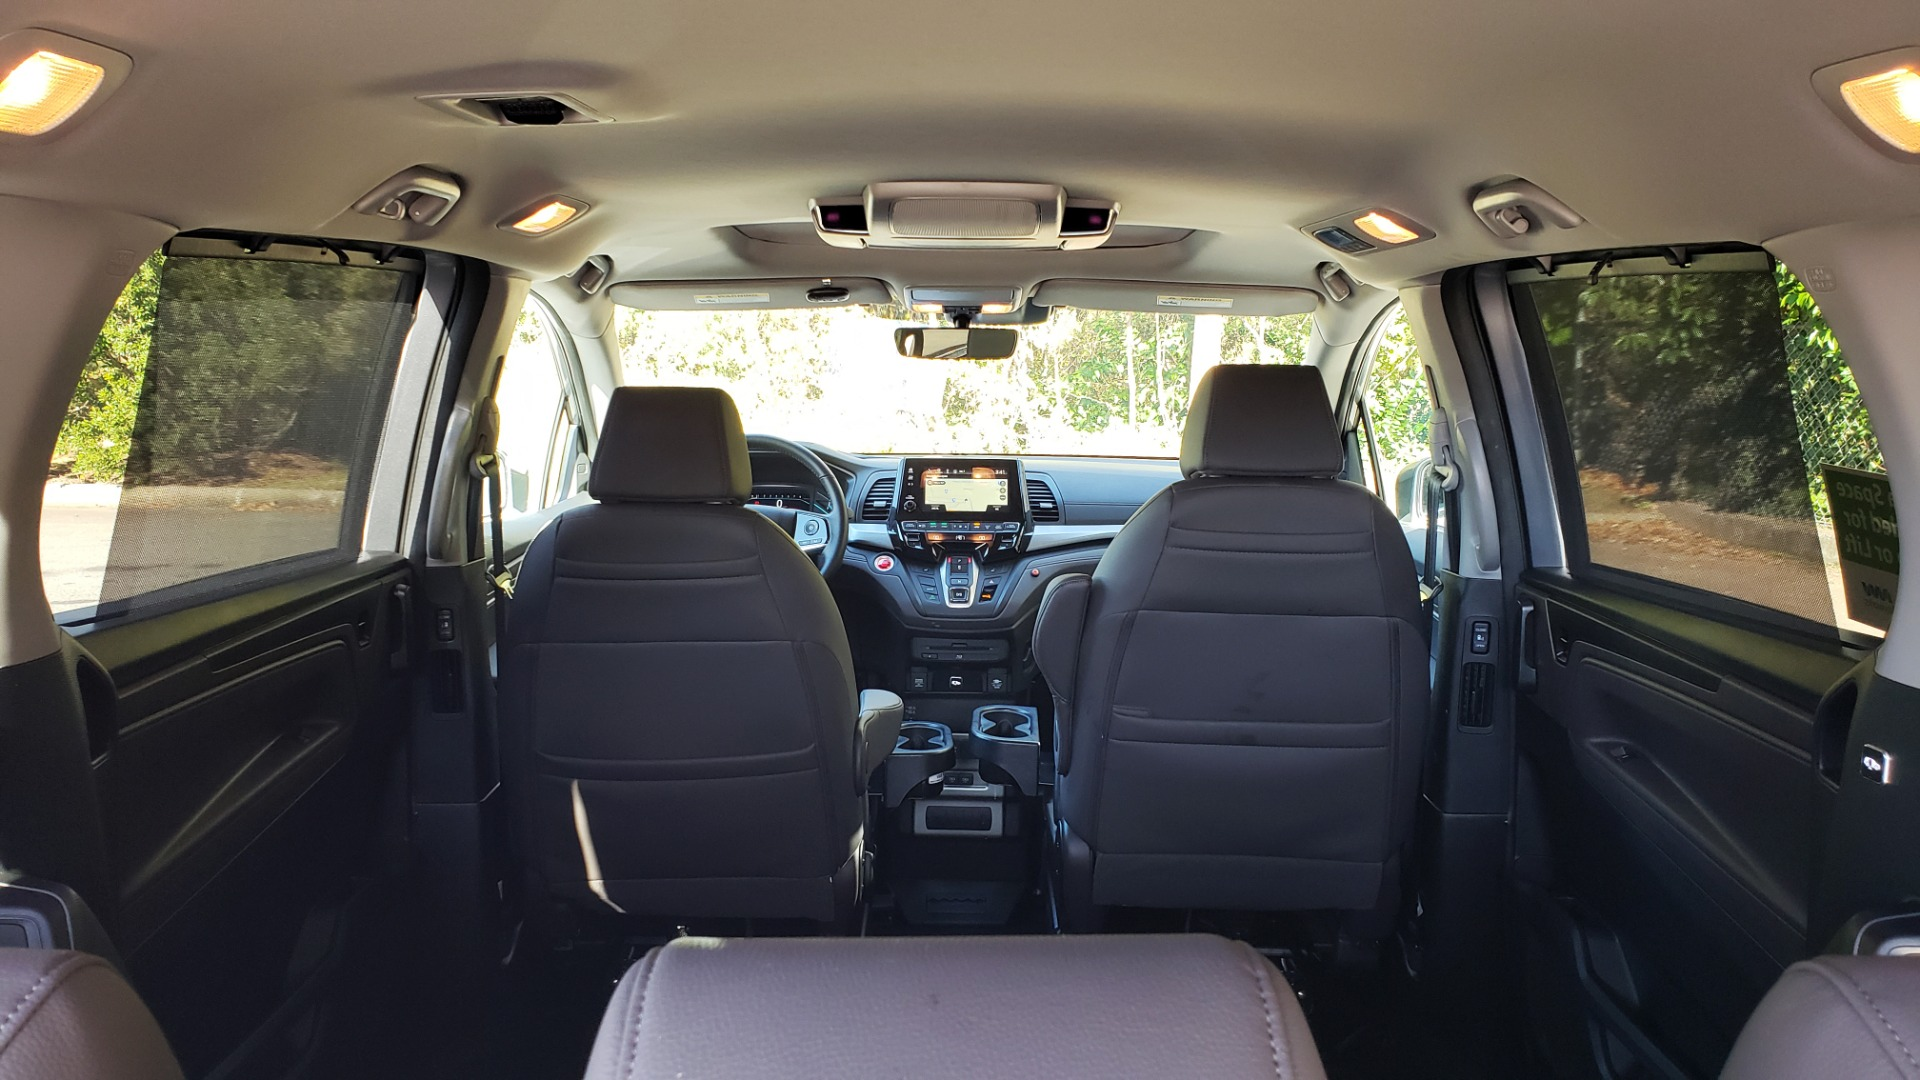 Used 2019 Honda ODYSSEY EX-L BRAUNABILITY / NAV / RES / LKA / BLUE-RAY / SUNROOF / REARVIEW for sale Sold at Formula Imports in Charlotte NC 28227 52